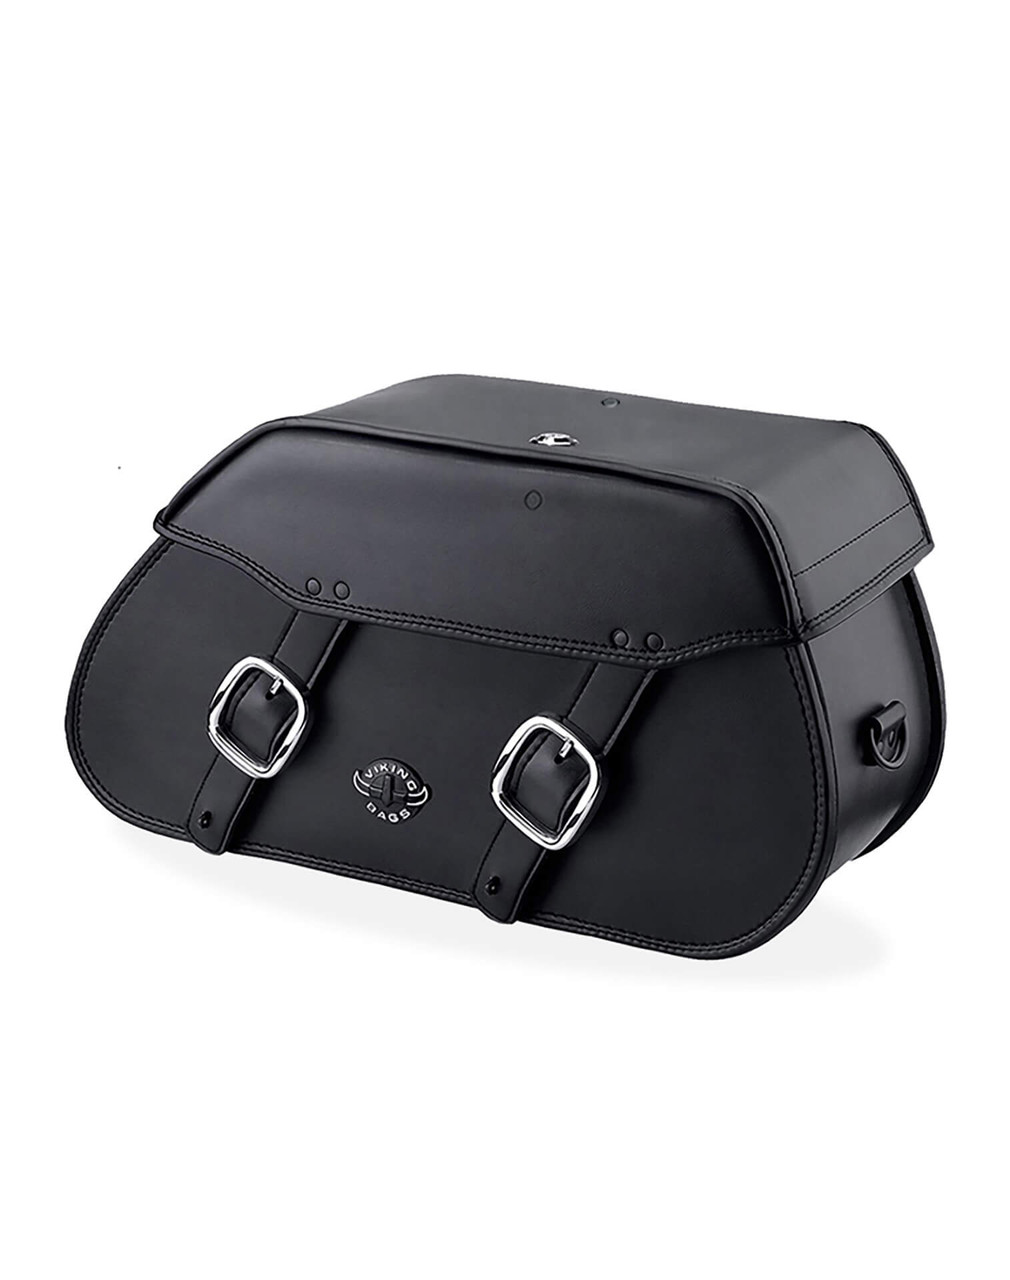 VikingBags Pinnacle Large Double Strap Leather Motorcycle Saddlebags For Harley Softail Breakout 114 FXBRS Main View